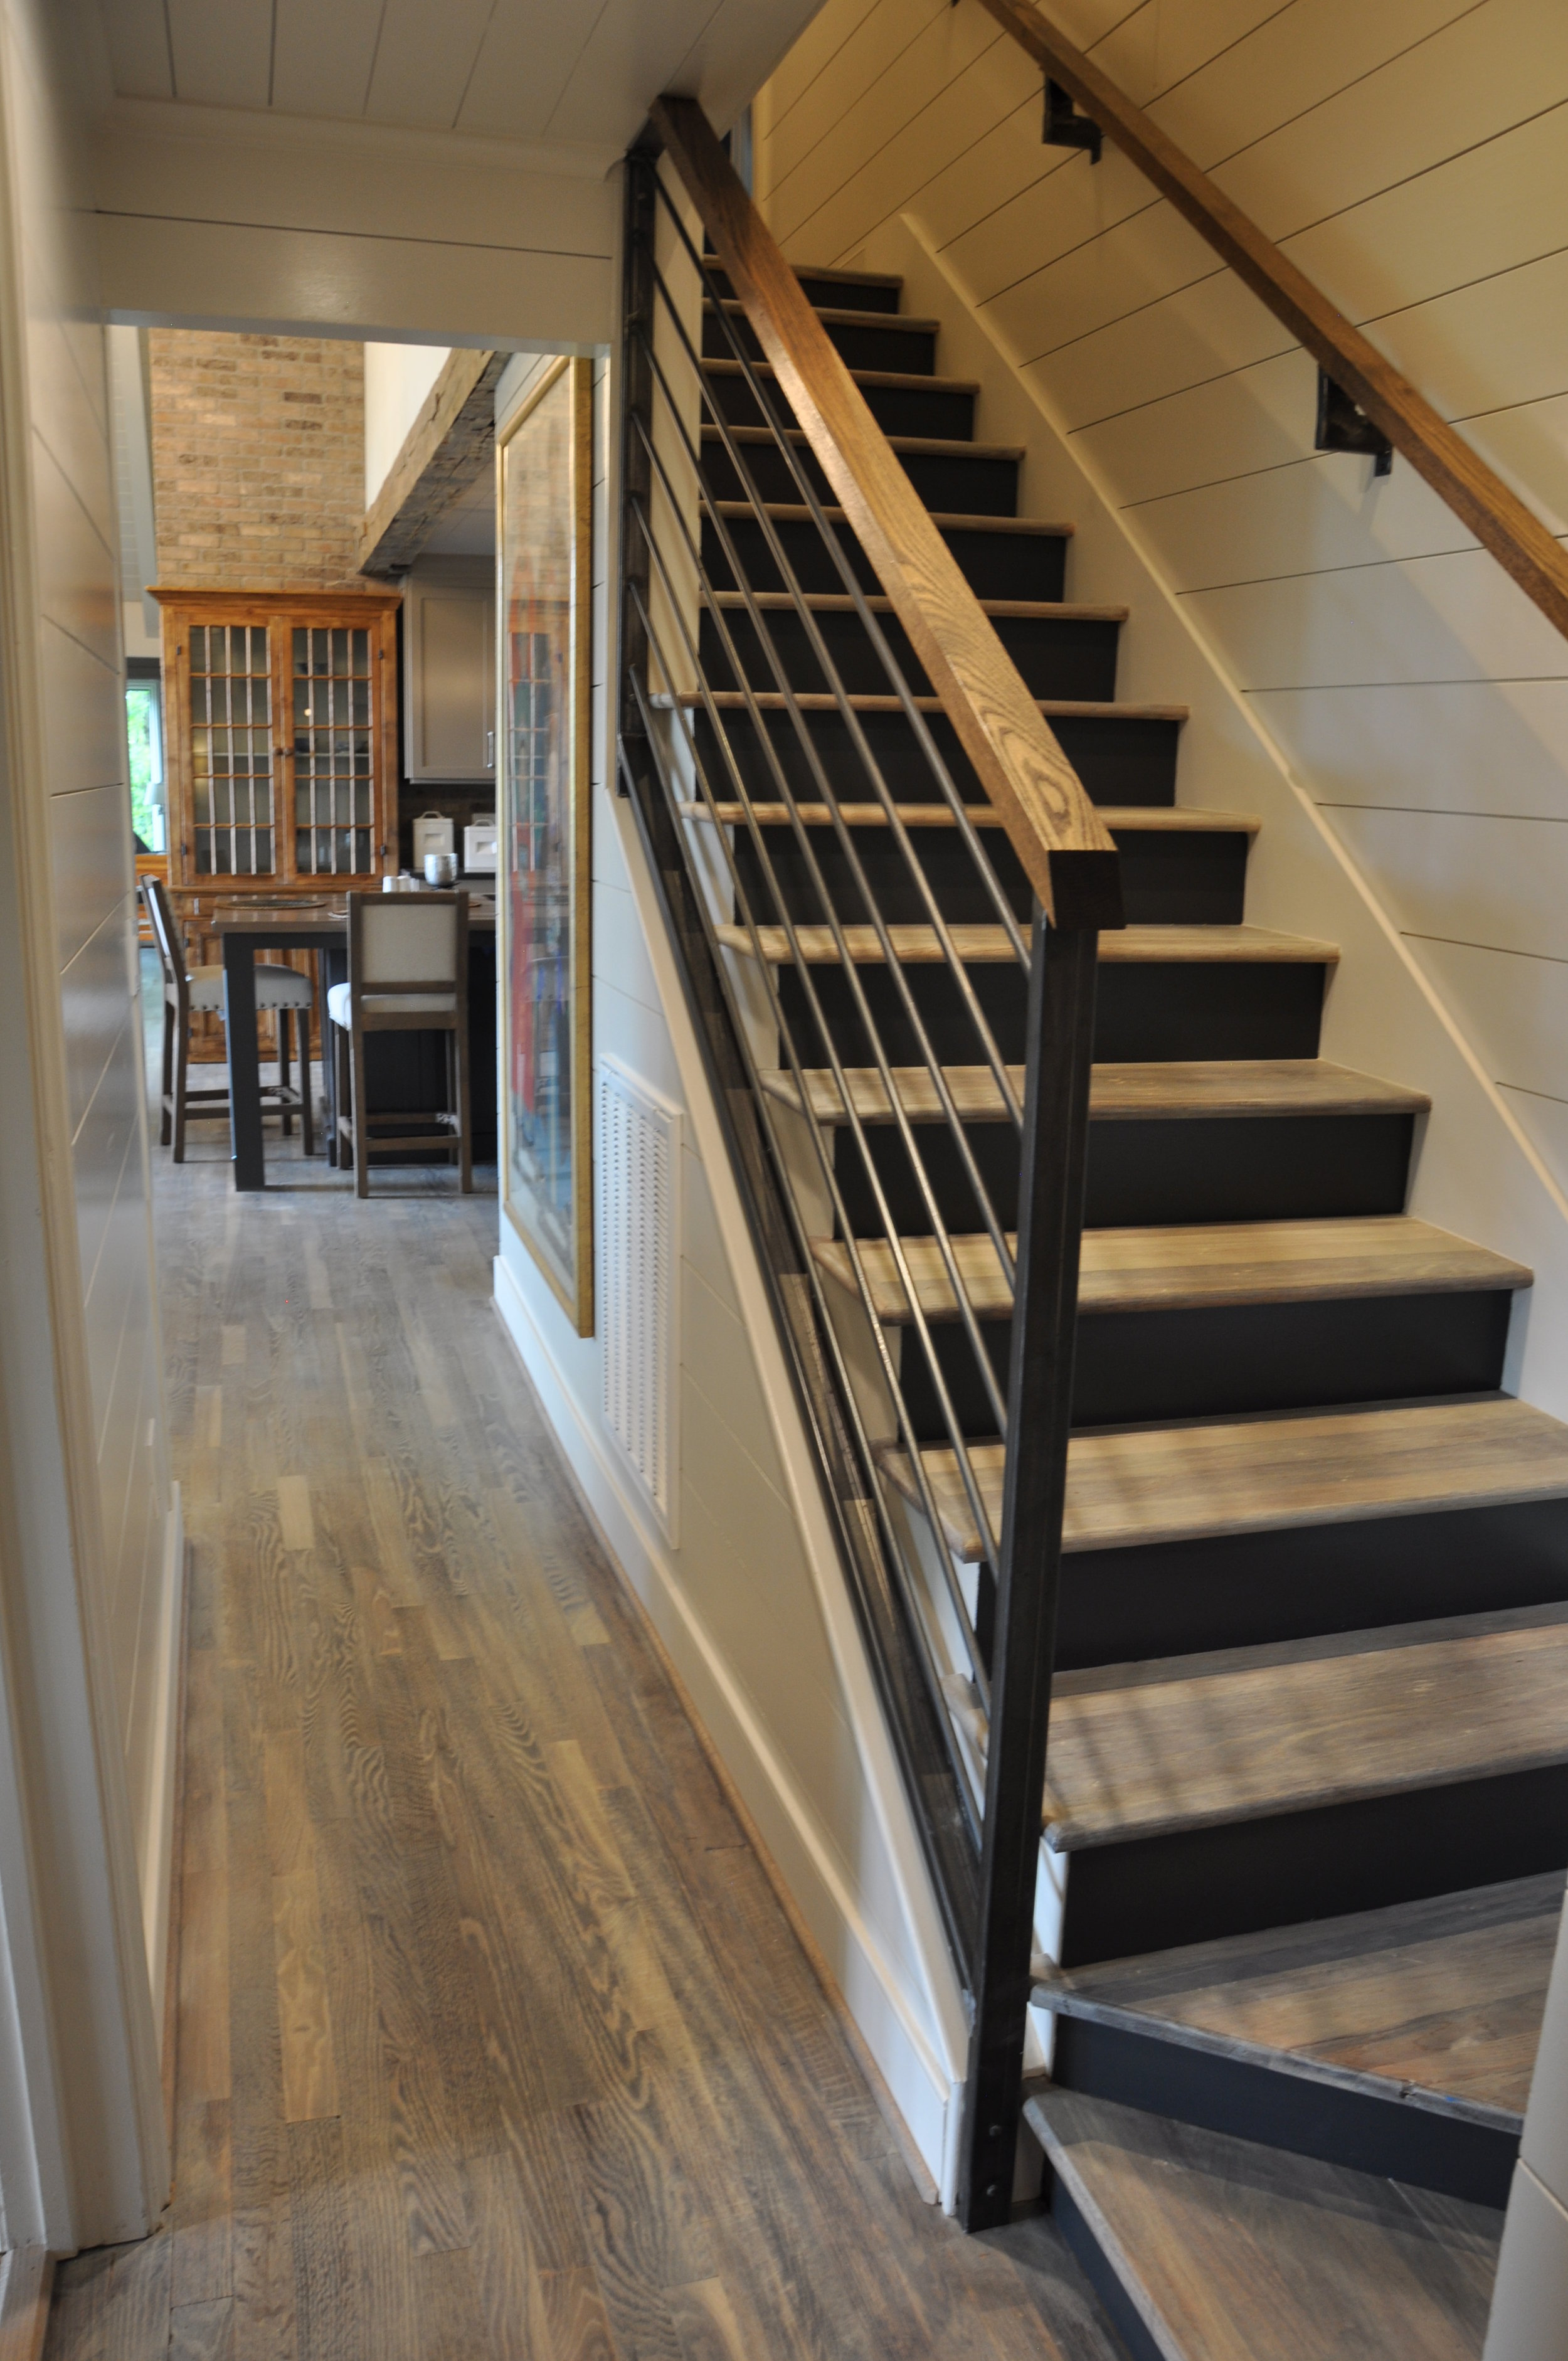 stairway was opened up and modernized.